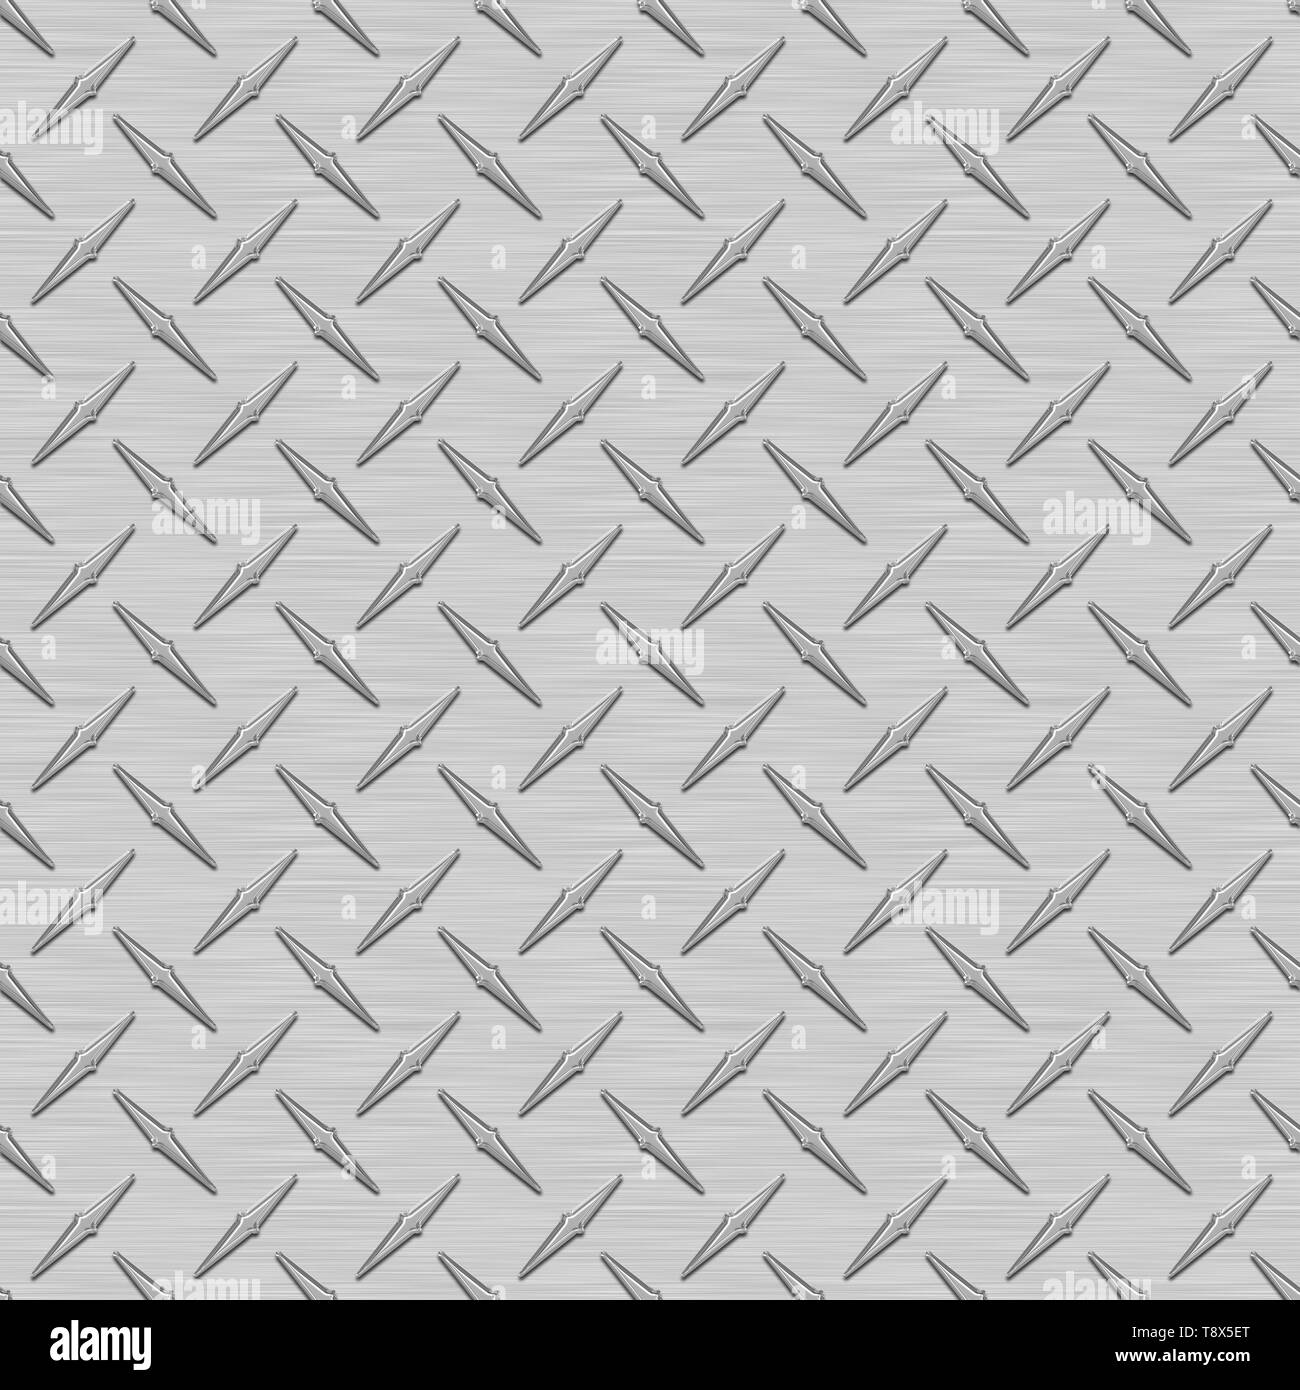 Gray Diamond Plate Metal Seamless Texture Tile - Stock Image